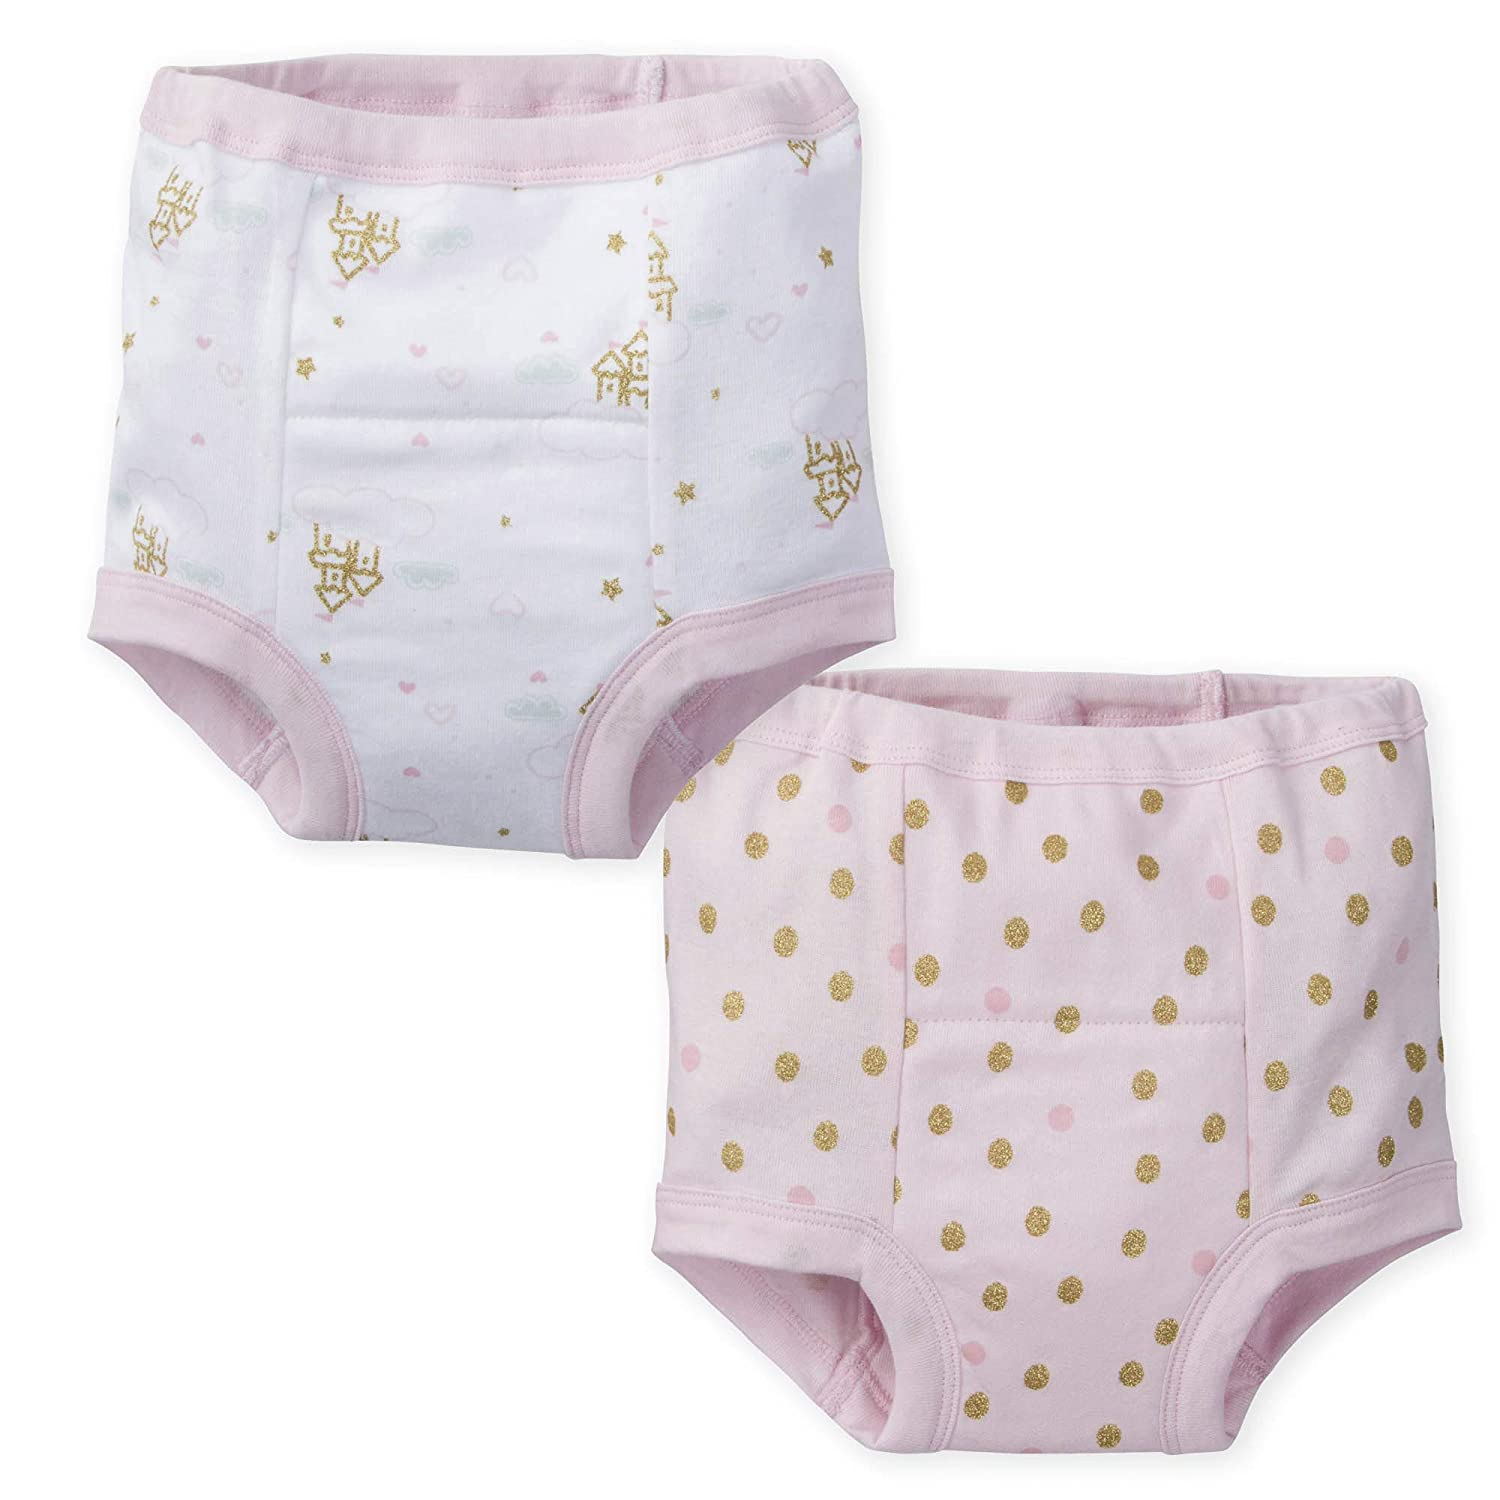 3T Gerber Baby Girls 4 Pack Training Pants Hearts